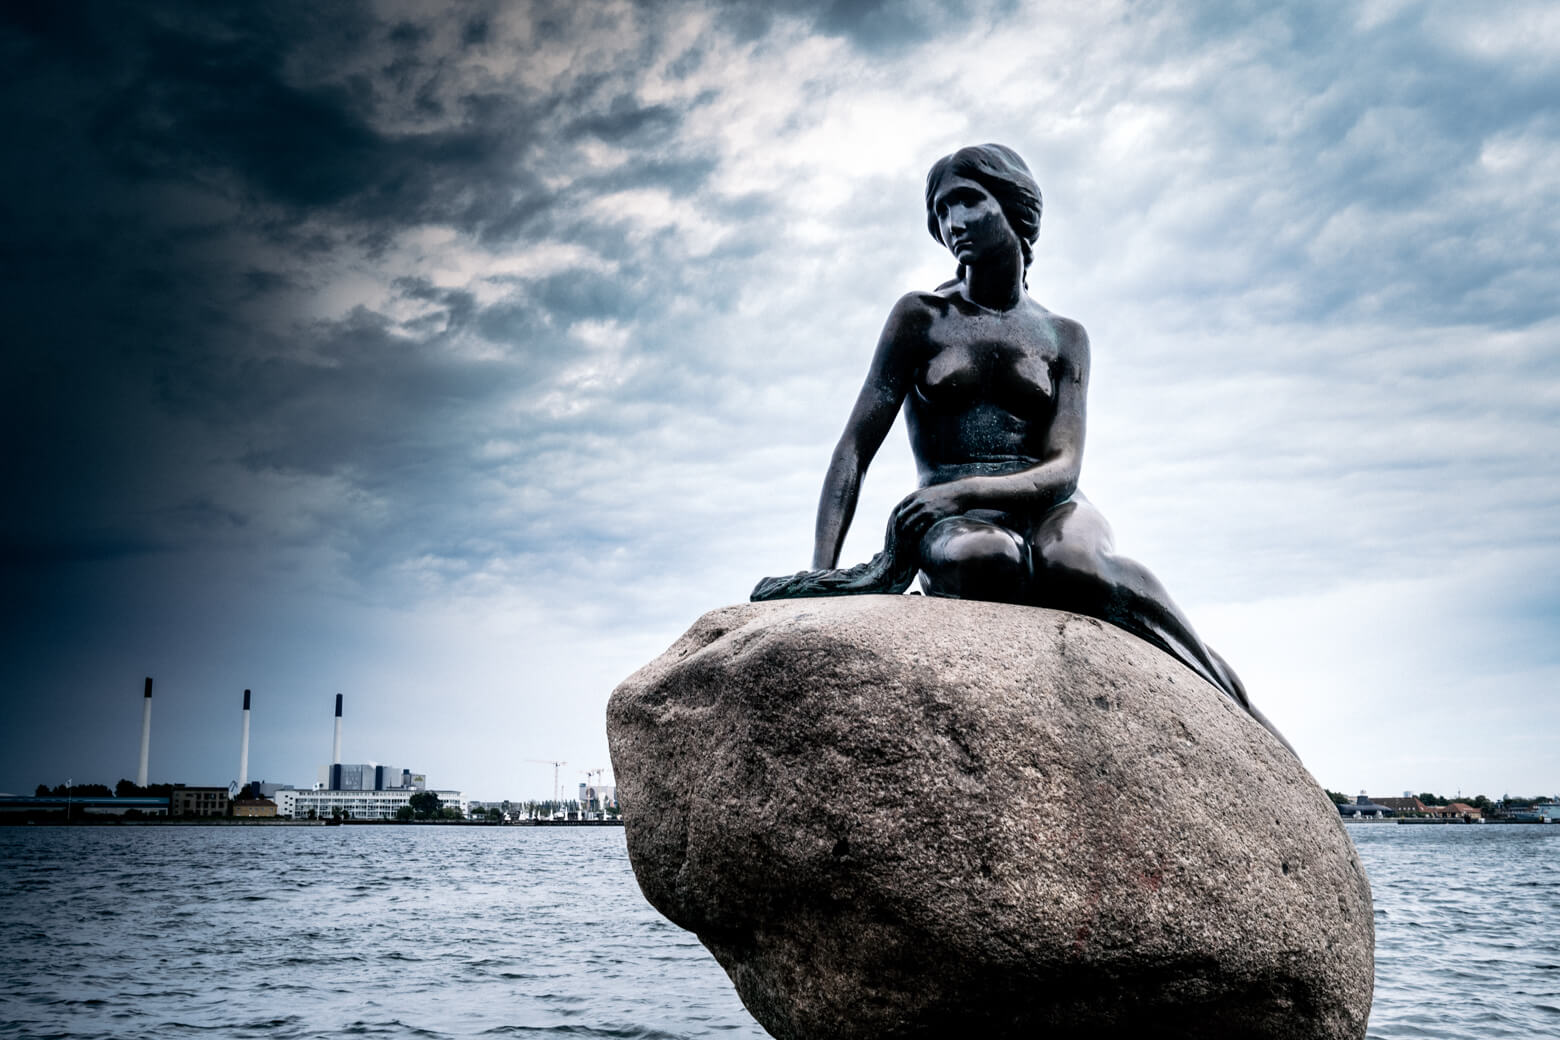 The Little Mermaid in Østerbro Copenhagen